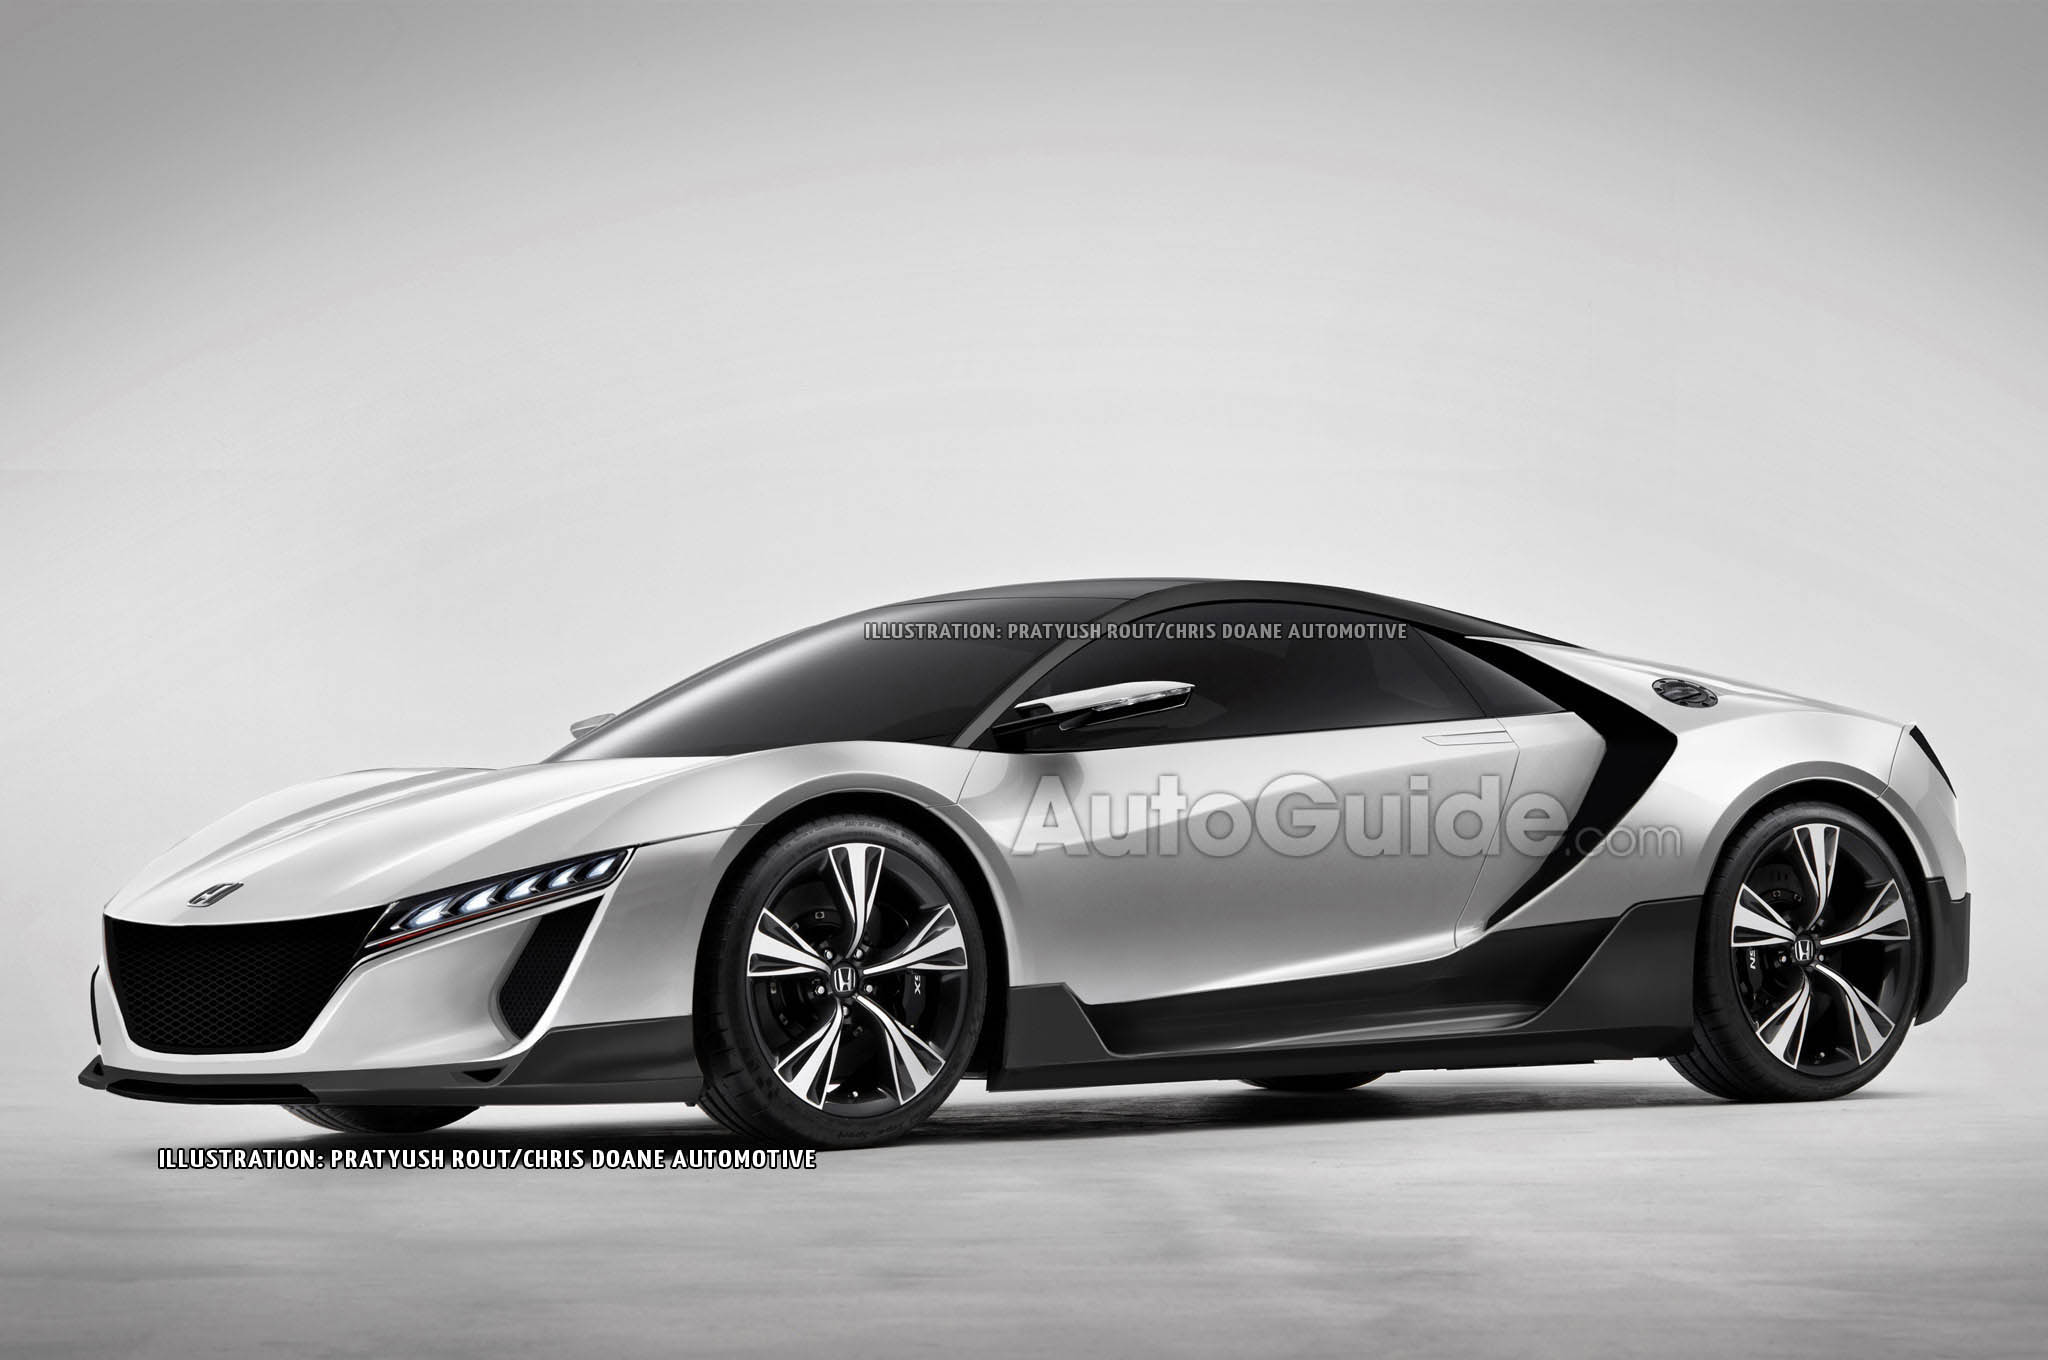 2018 Honda NSX Concept photo - 3